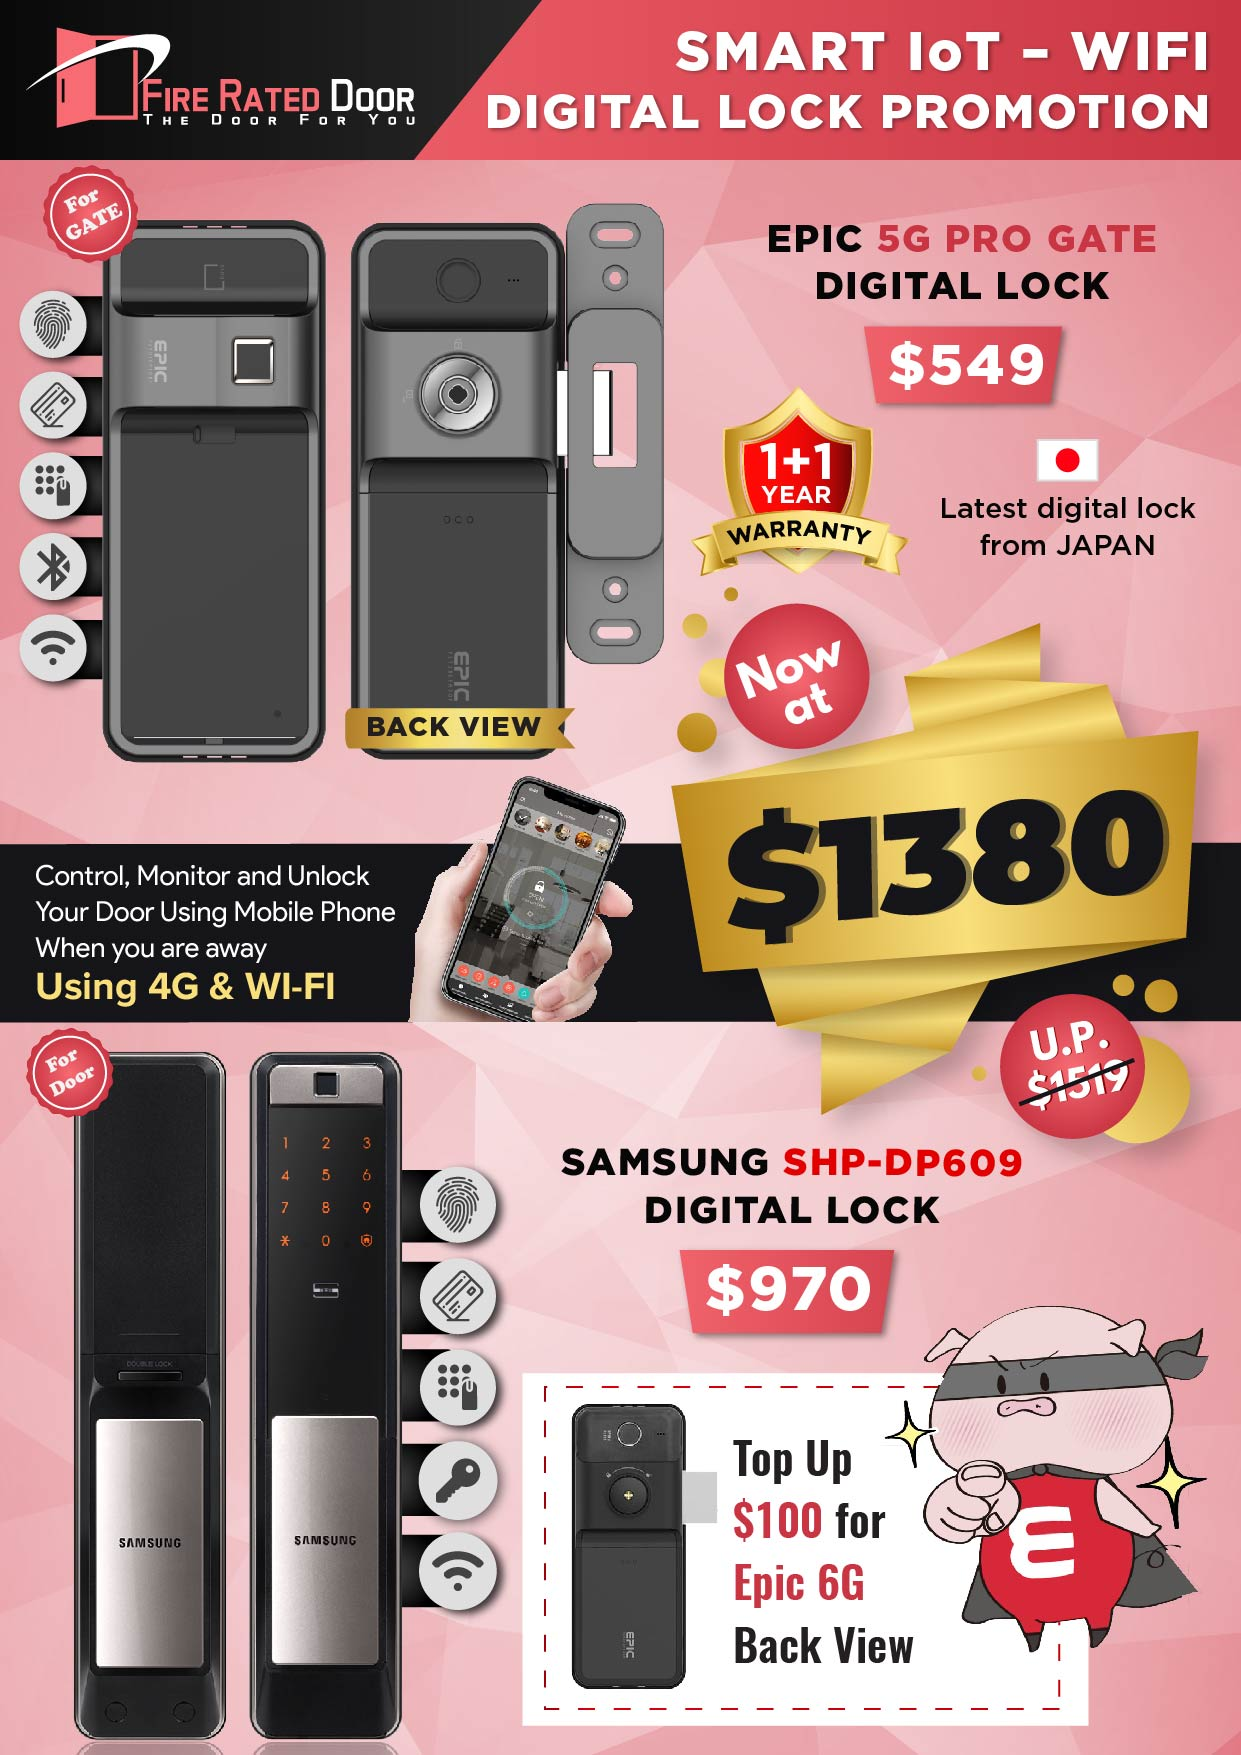 EPIC 5G PRO Gate and Samsung SHP-DP609 Door Digital Lock Promotions